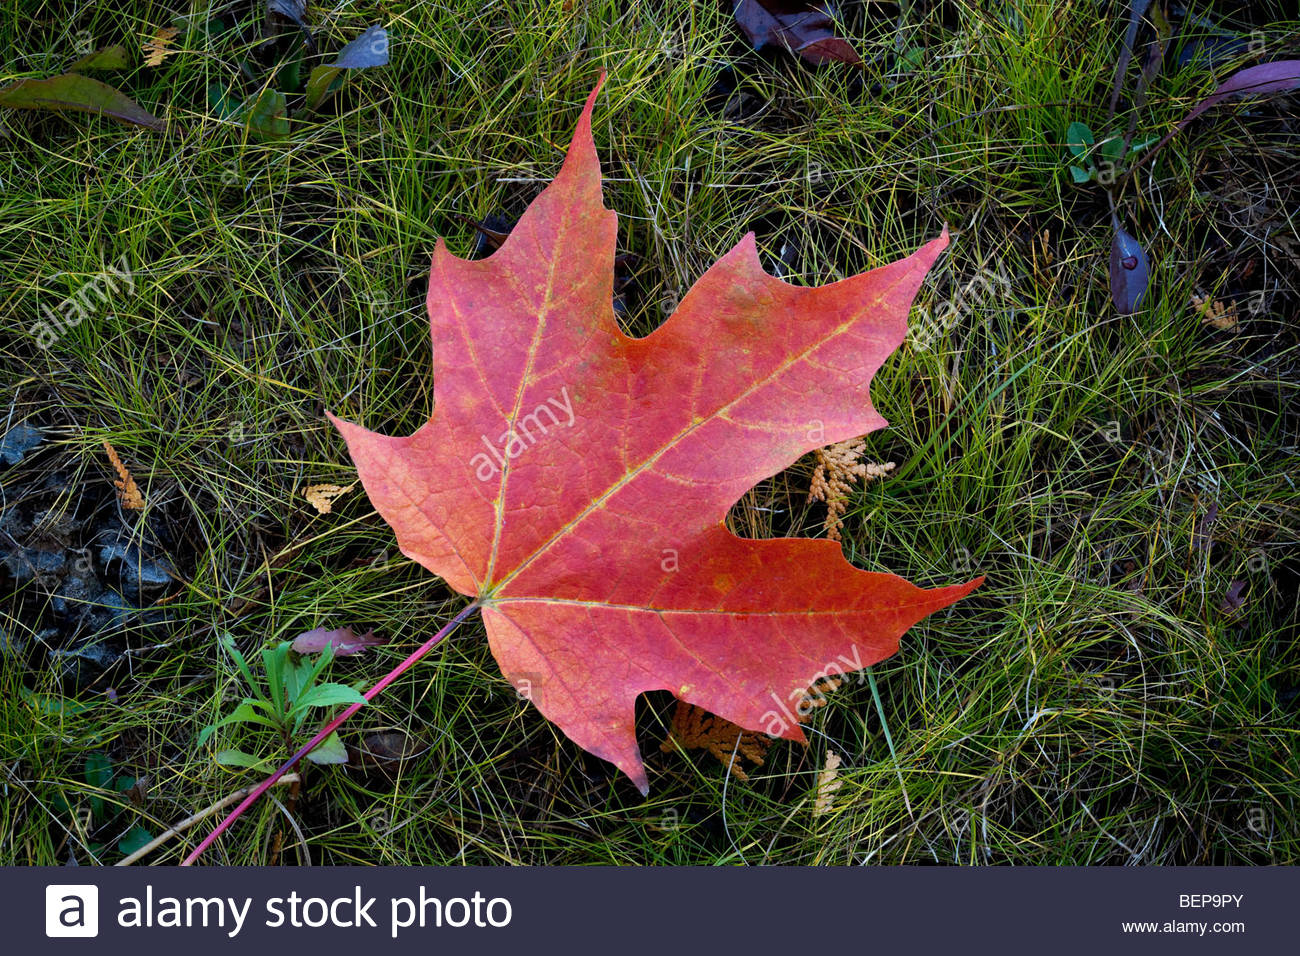 Maple leaf the symbol of canada on the forest floor in autumn in maple leaf the symbol of canada on the forest floor in autumn in rouge park an urban wilderness in toronto ontario canada biocorpaavc Choice Image